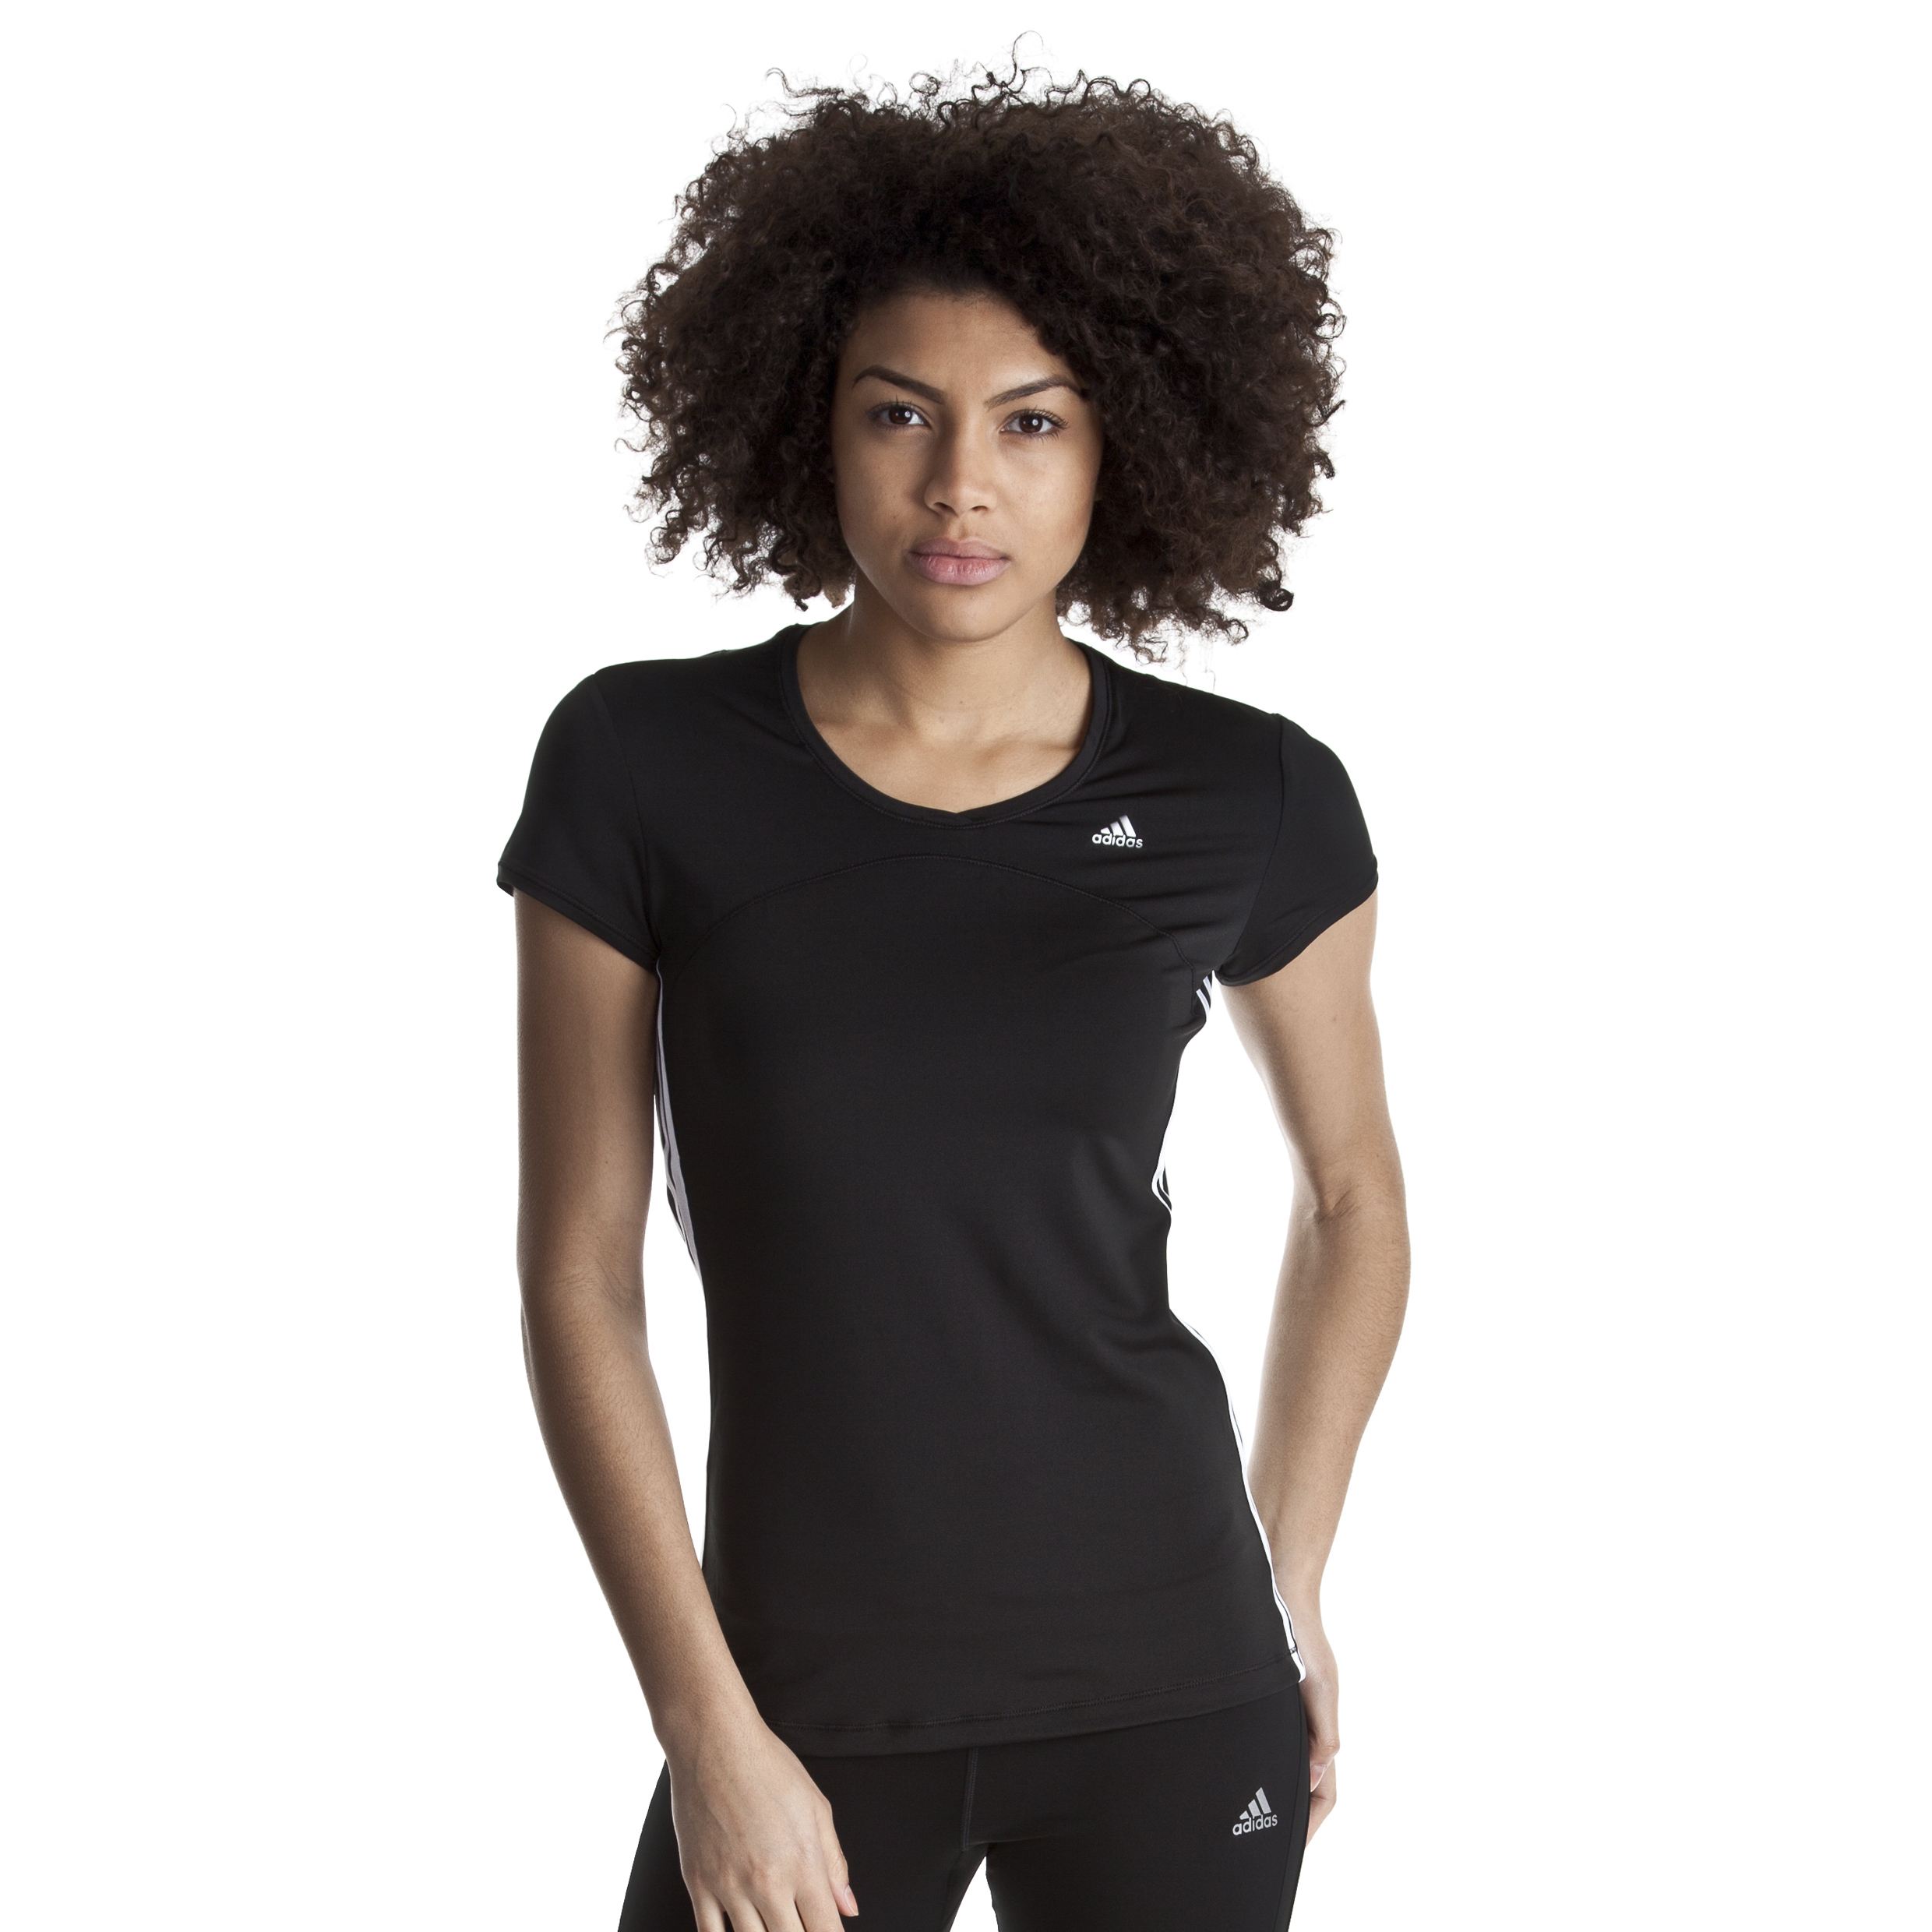 Adidas CLIMACOOL Training Core Tee - Black/White - Womens